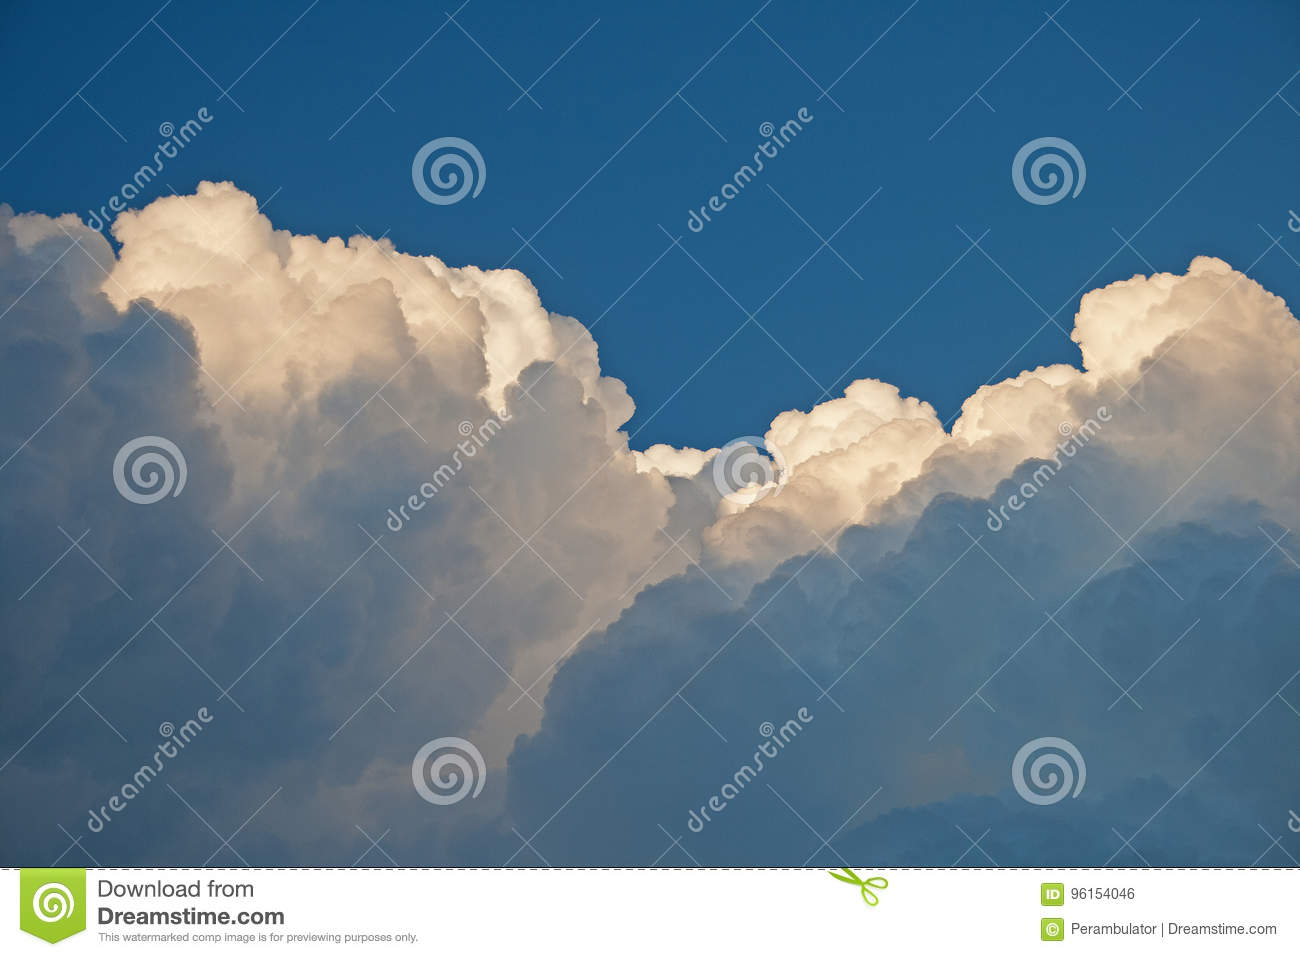 BILLOWING LAYERS OF CLOUD